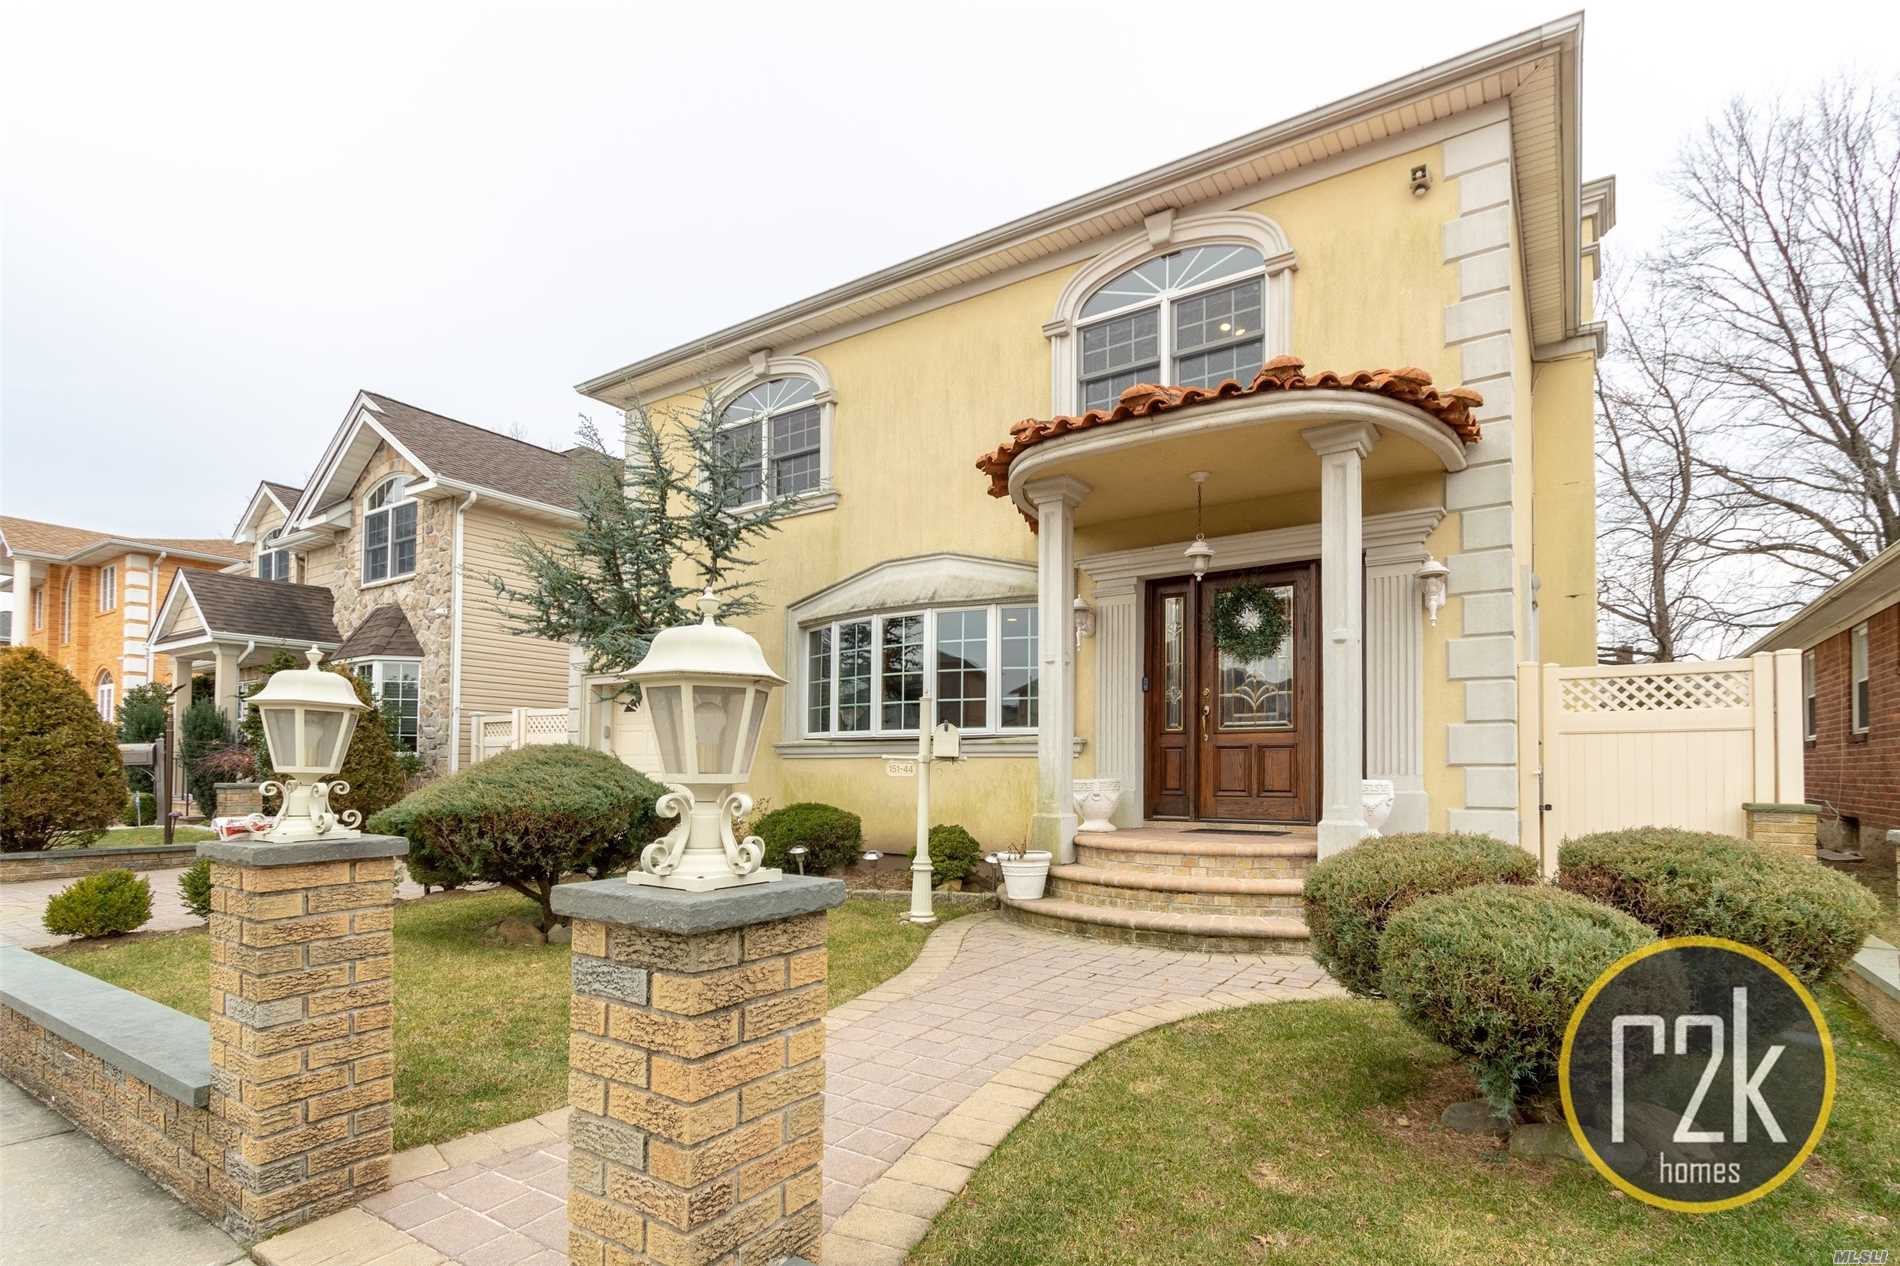 Beautiful Detached One Family Home In Prime Whitestone Area. Between 154th Street & Murray Street. Home Is In Excellent Condition (Contractors Home). Fully Pavered Driveway, Entry & Backyard With An Above Ground Pool Surrounded With A Deck. Perfect Size Backyard Built To Entertain. 4 Bedrooms 3 Full Bathrooms & Full Basement. New Gas Boiler. Truly Turn Key.